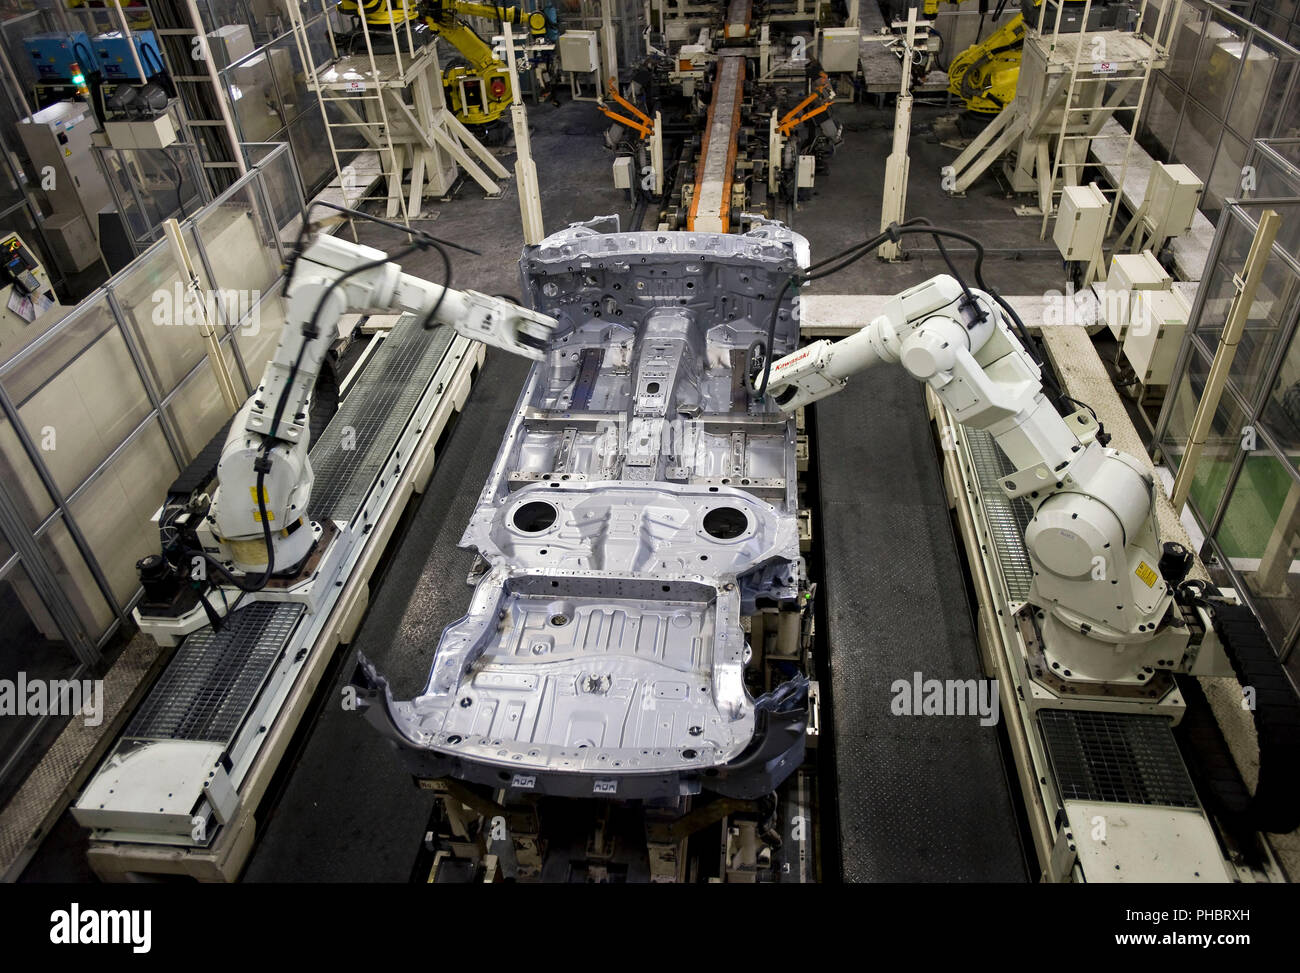 Robots work on a vehicle at Nissan Motor Co.s assembly plant in Tochigi, Japan on Thursday 12 Nov.  2009.  Photographer: Robert Gilhooly Stock Photo